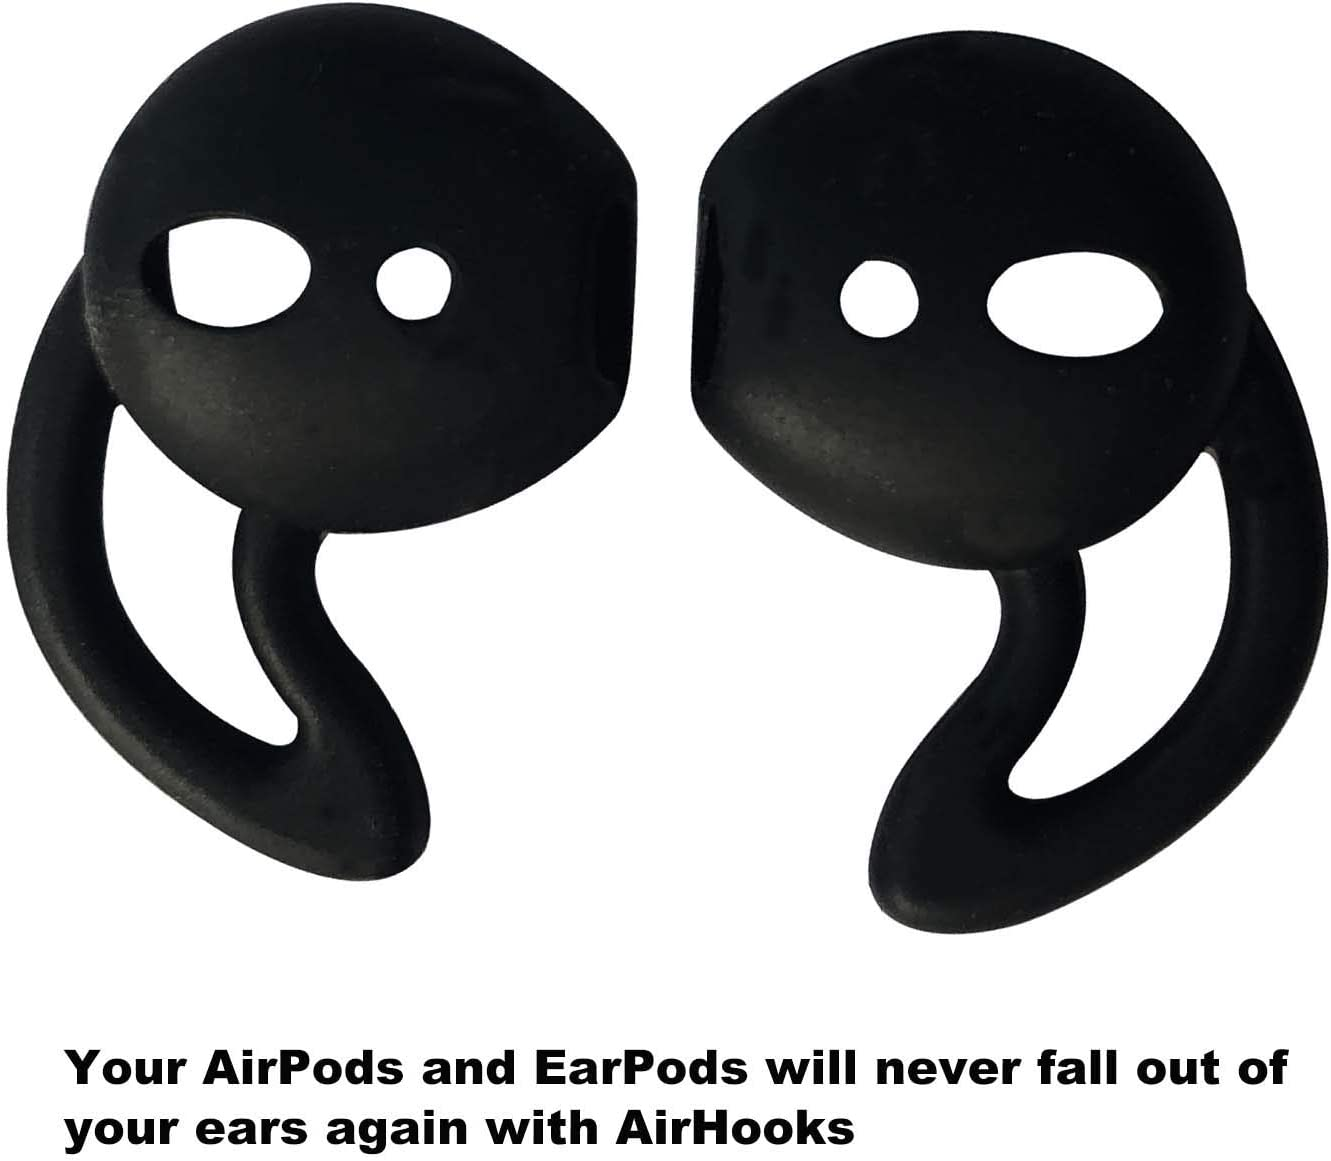 Earpods,Anti-Slip Silicone Soft Sport Covers Accessories Apple AirPods Earbud airpods eartips-Black 3 Pairs Compatible with Airpods 1 /& 2